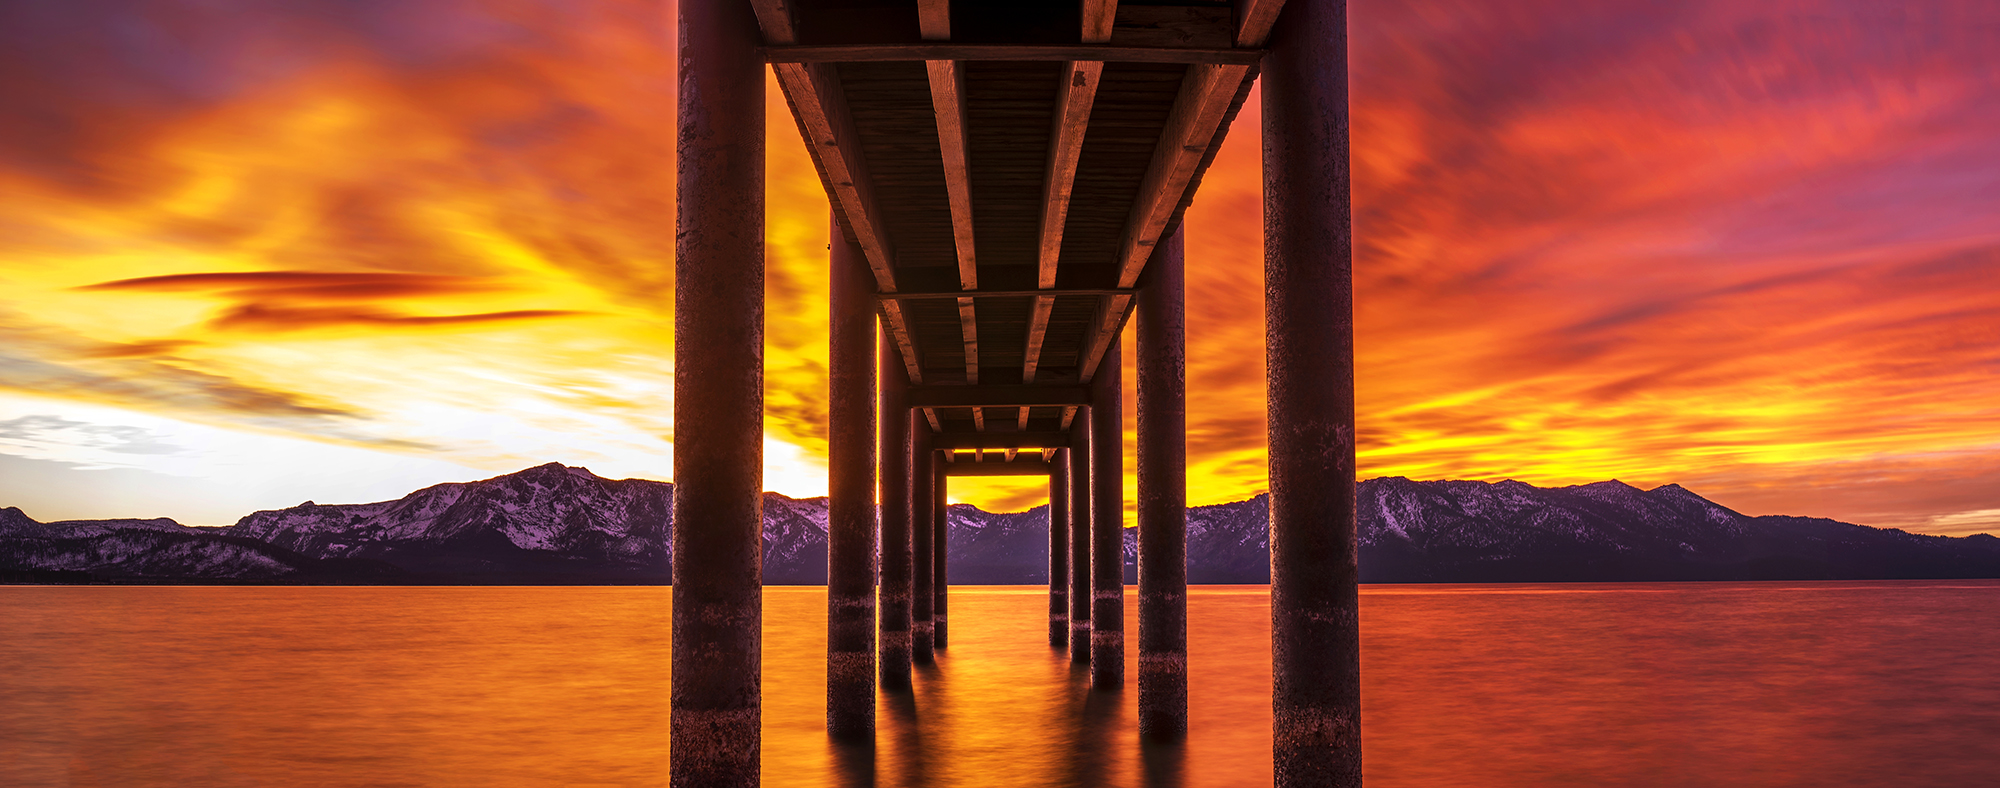 under the dock sunset pano color correction